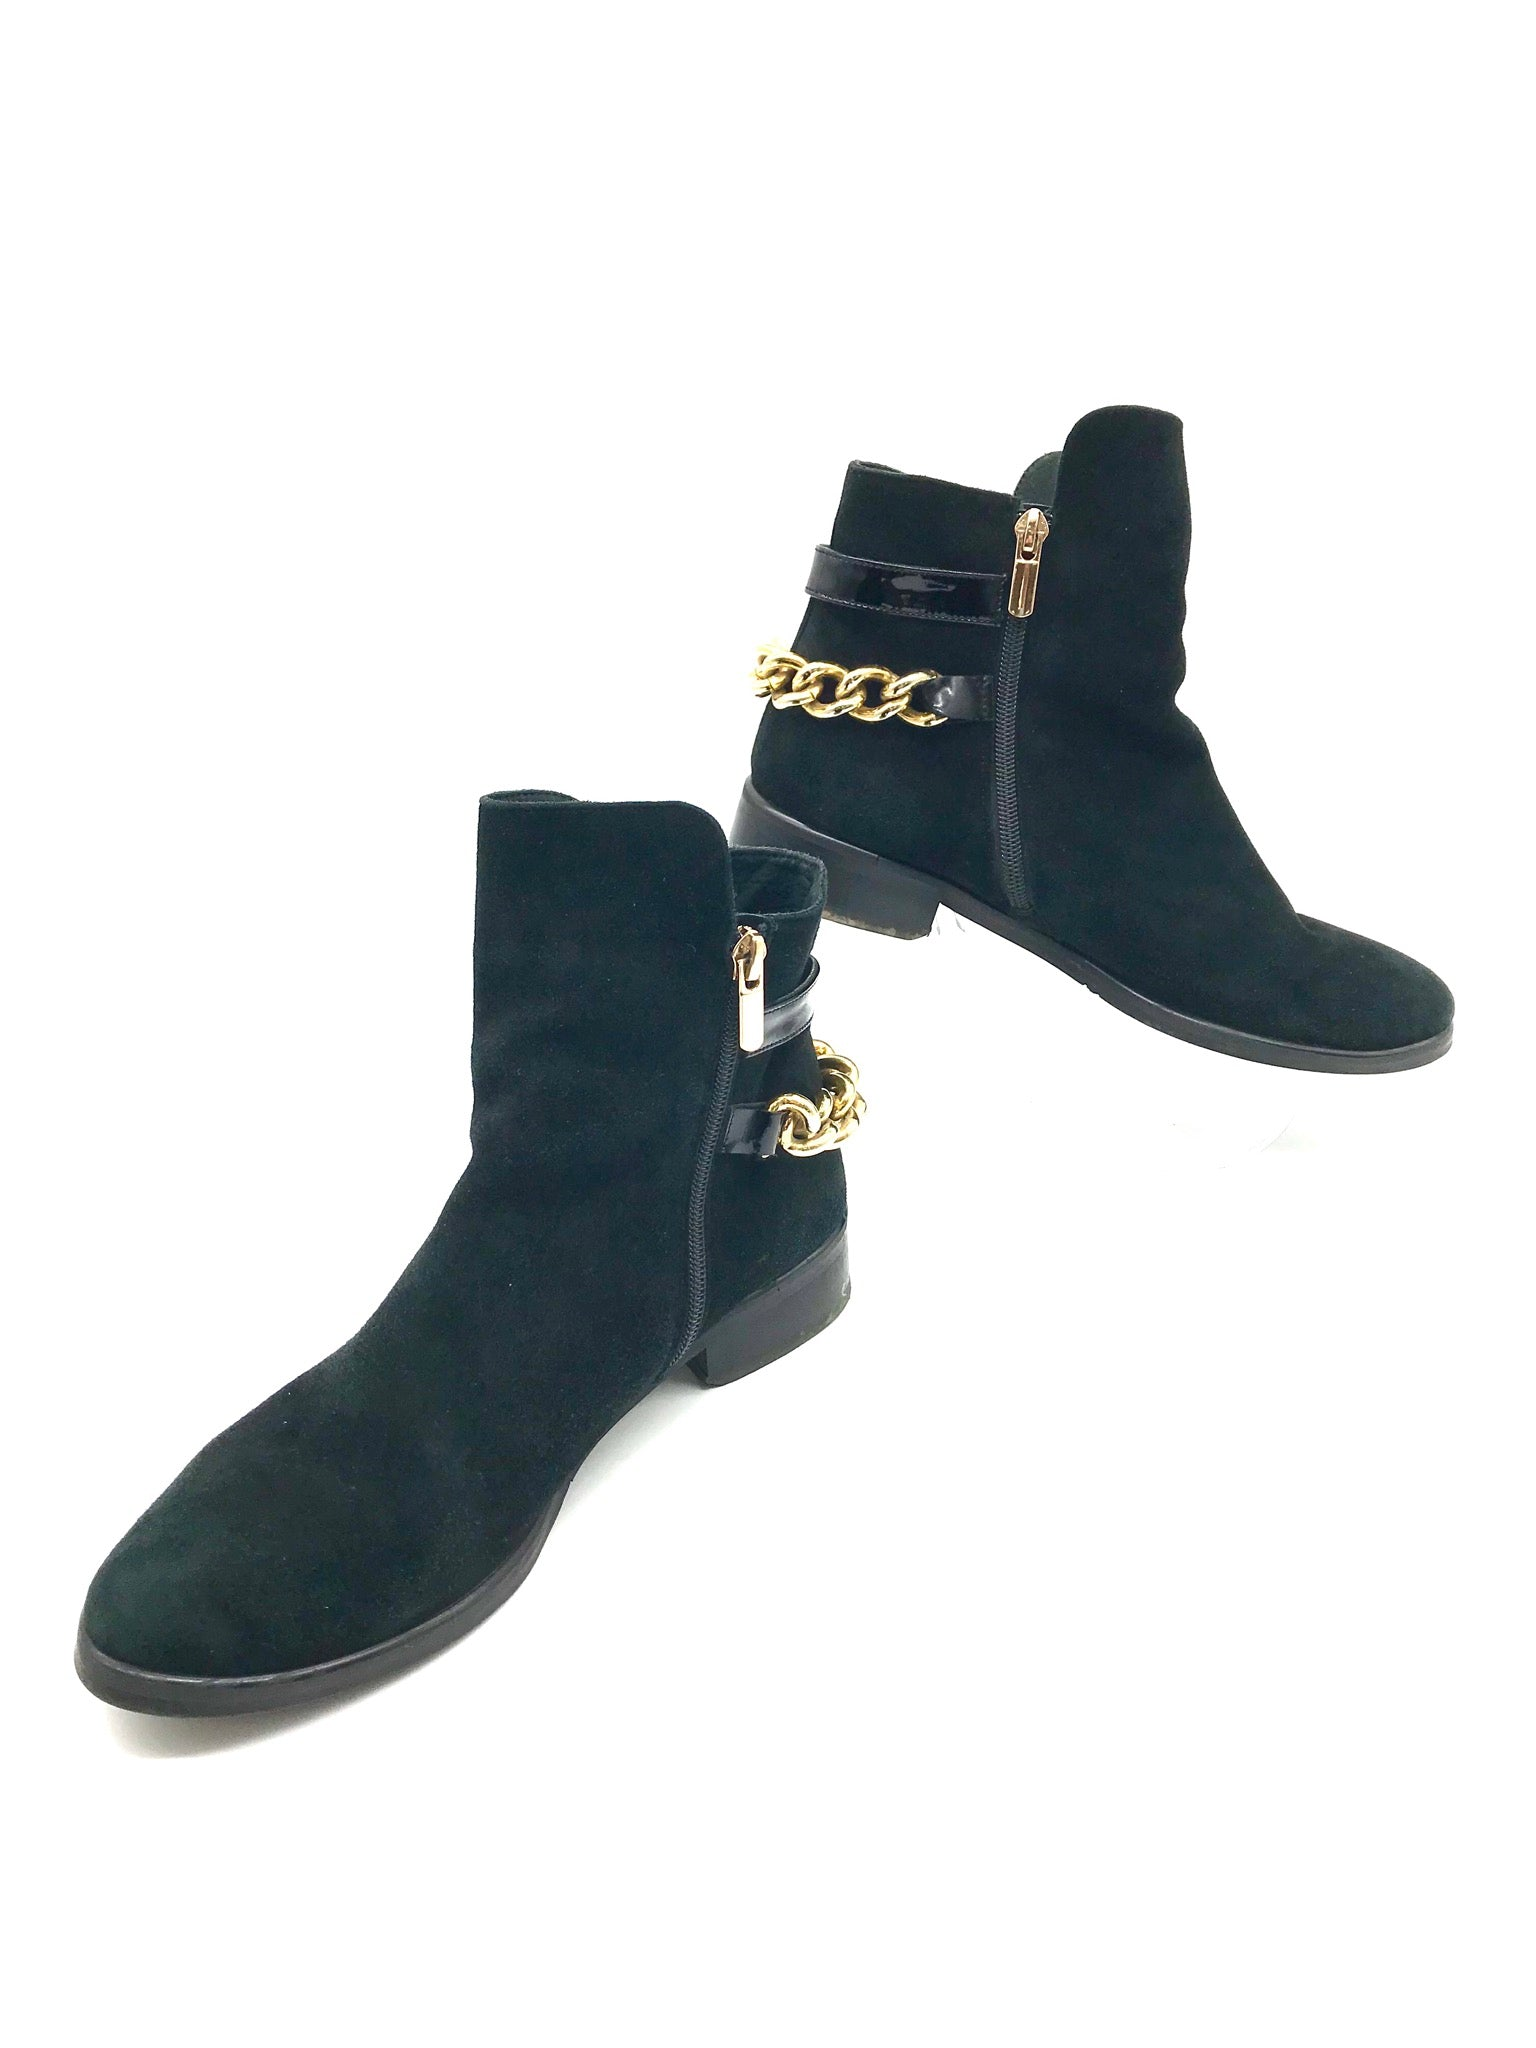 Primary Photo - BRAND:    ITALY DESIGN / CHARMISS <BR>STYLE: BOOTS ANKLE <BR>COLOR: BLACK <BR>SIZE: 7 <BR>OTHER INFO: CHARMISS - <BR>SKU: 262-26275-68602